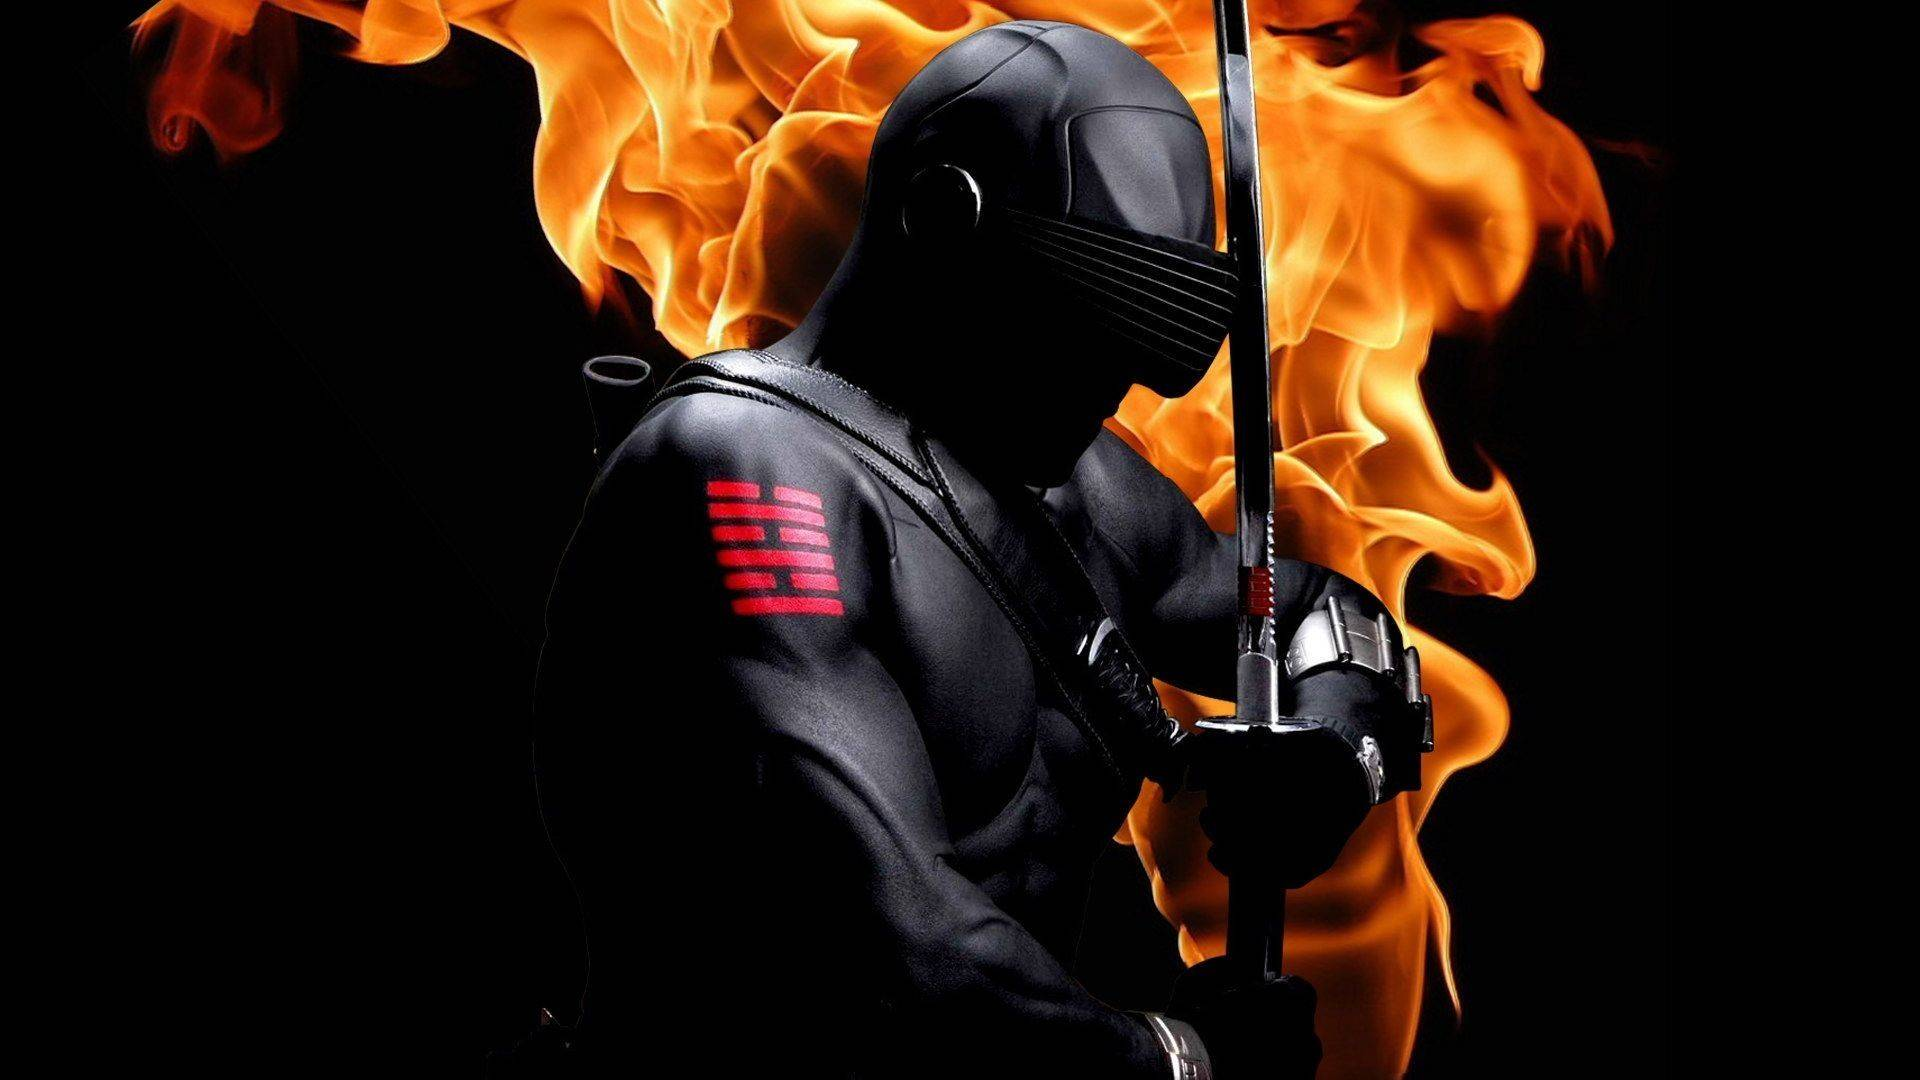 Snake Eyes GI Joe with sword on fire   Wallpapers Picture 1920x1080